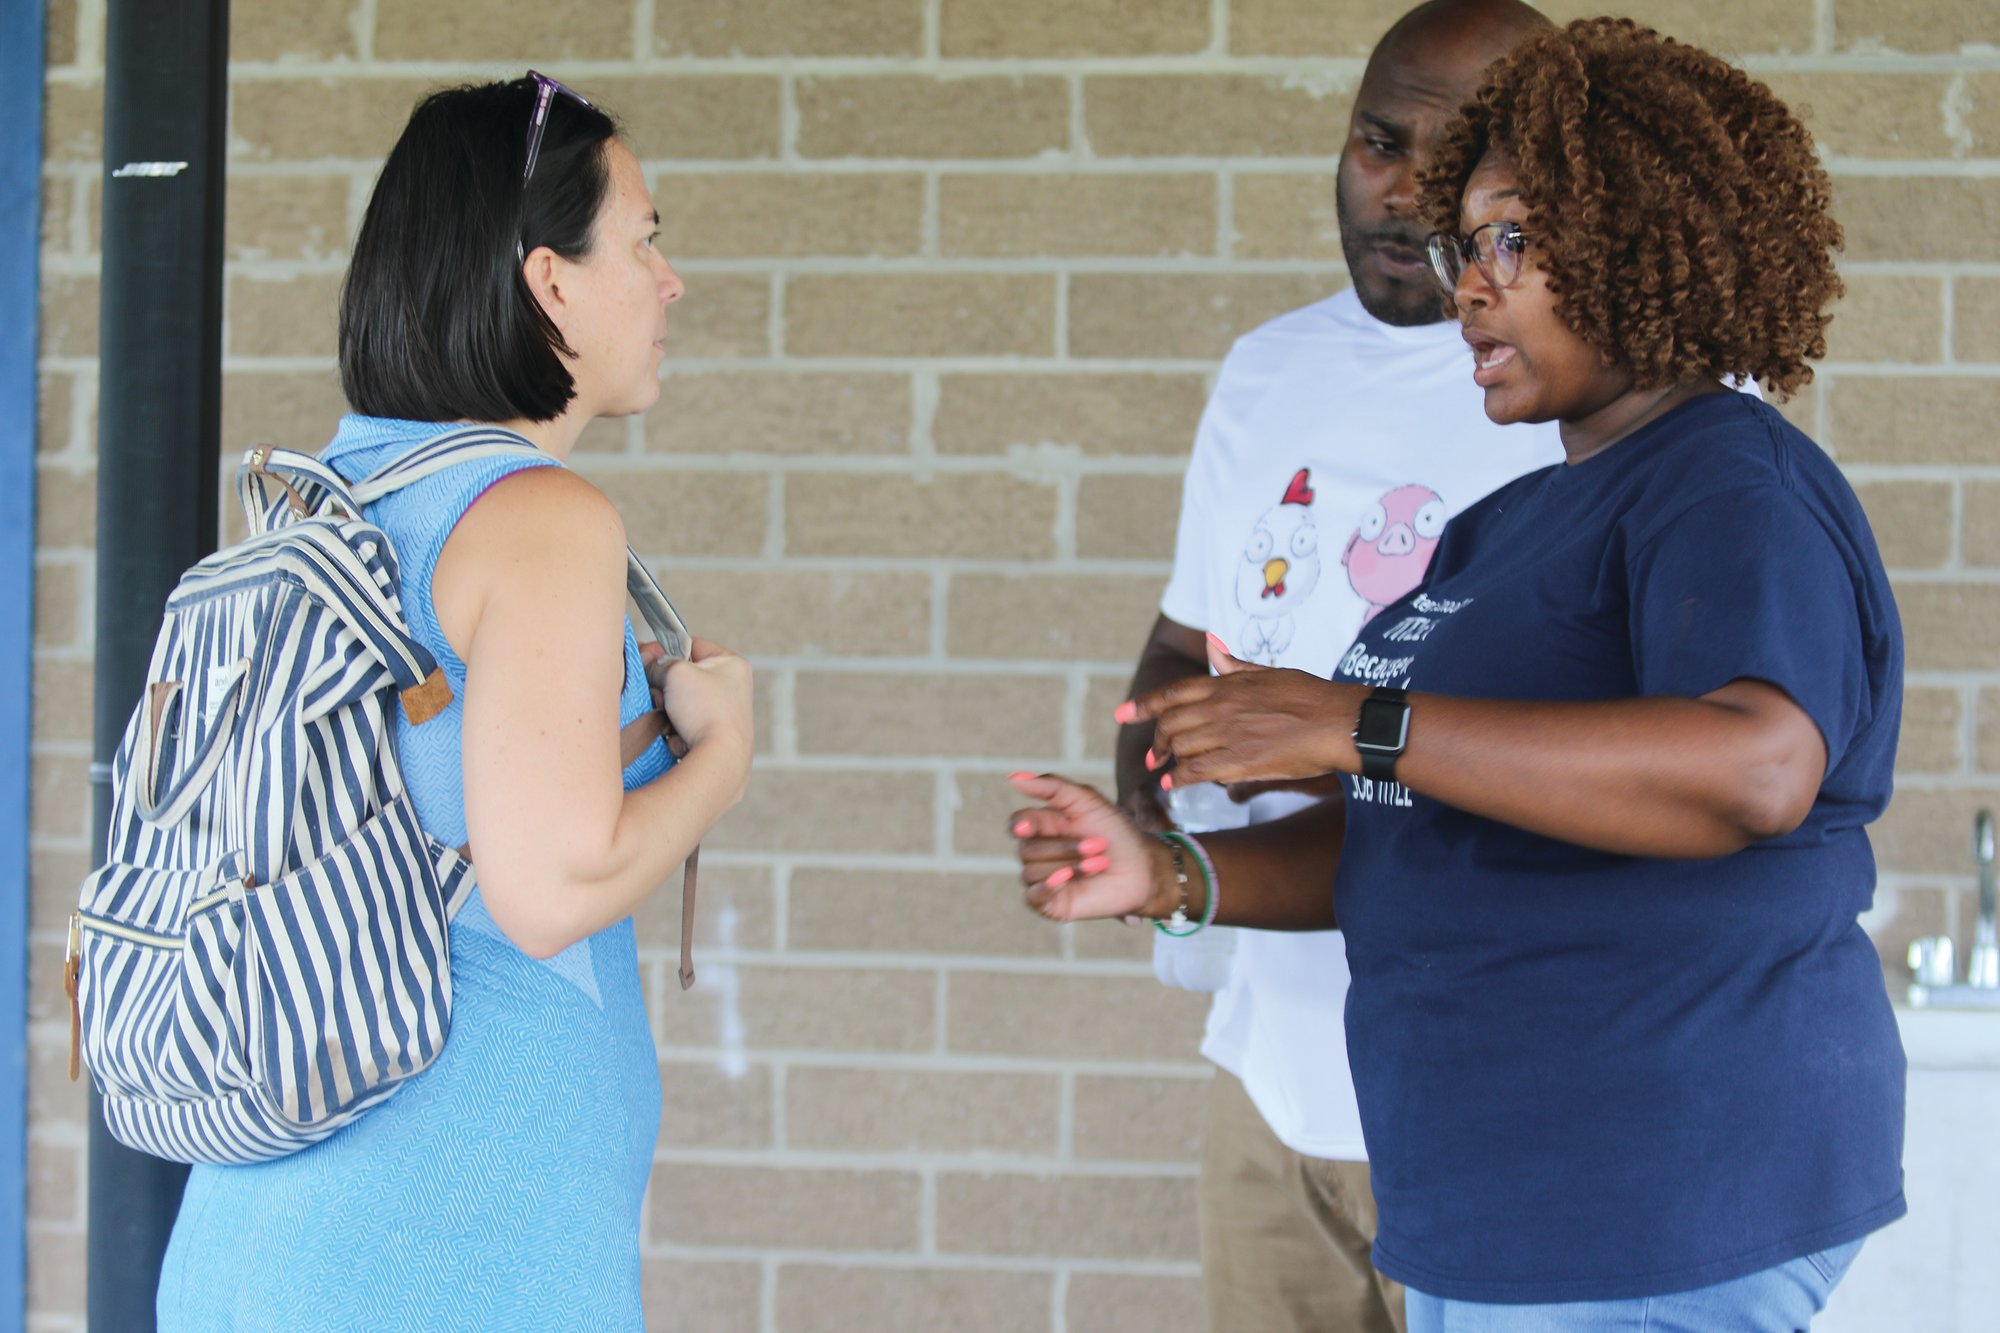 Arthena Woods, right, is seen in this 2019 photo at Sumter School District's inaugural Title I Family Engagement Festival at Sumter High School.